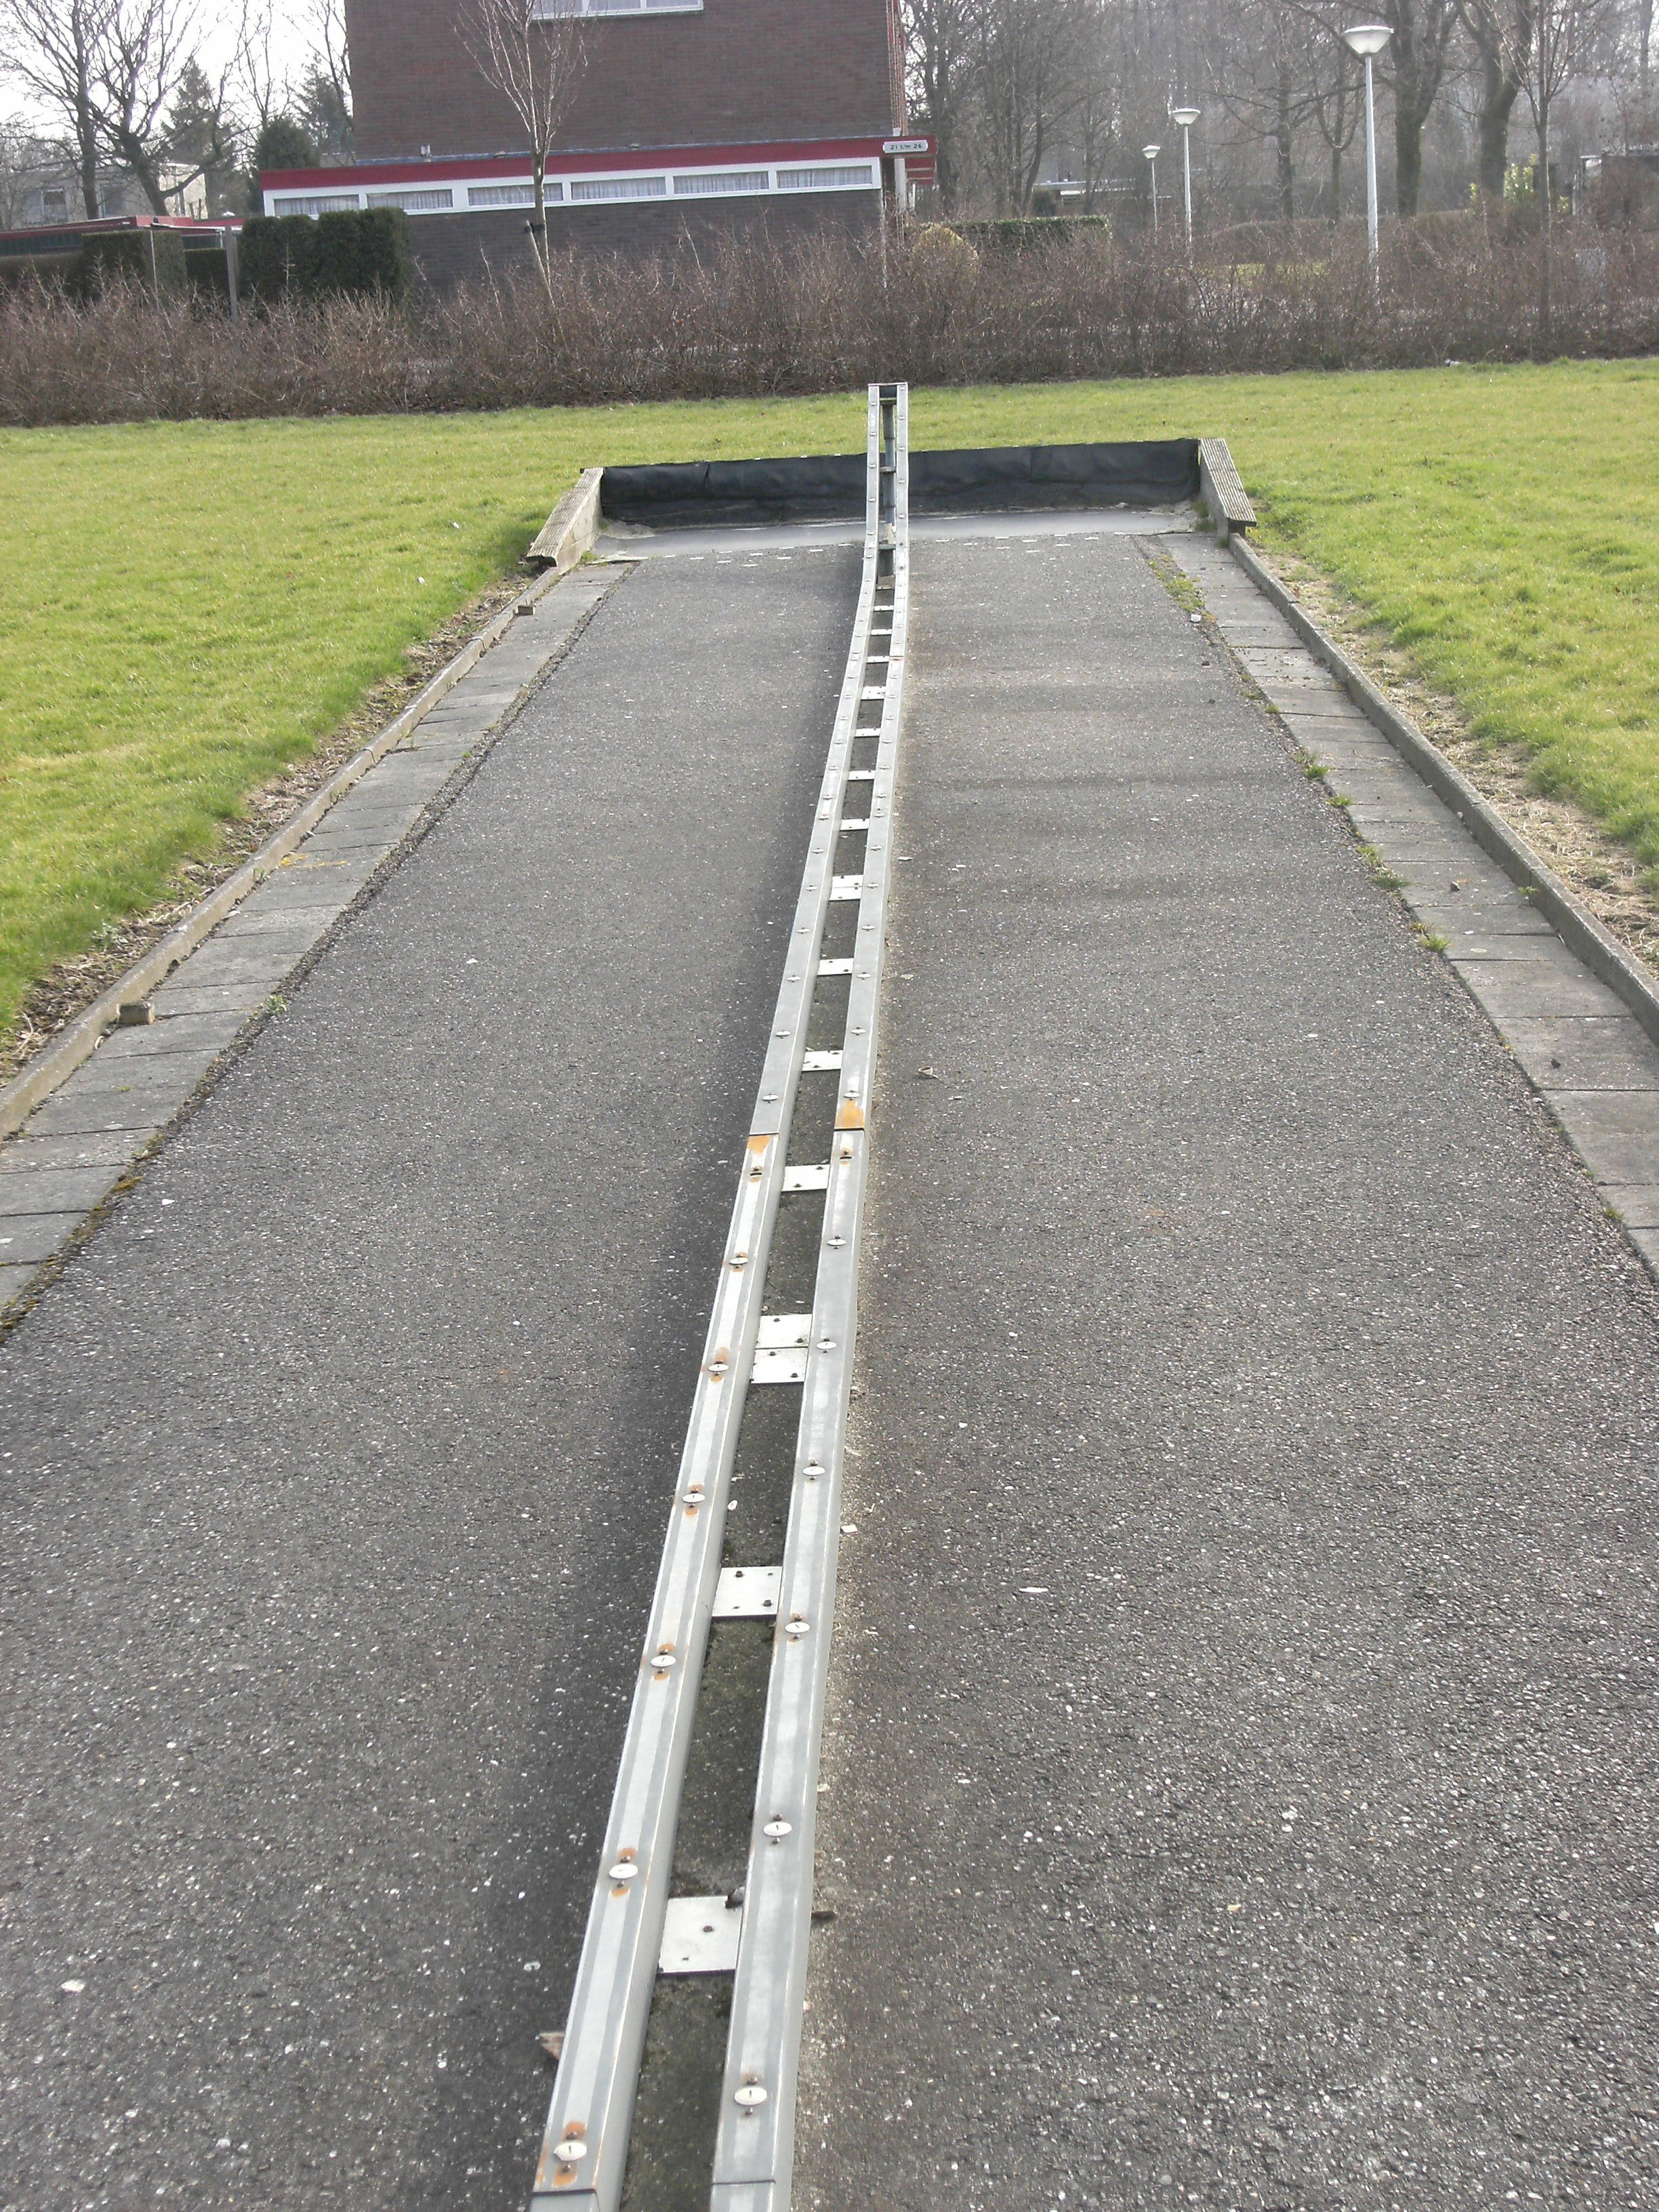 outdoor bowling lane images reverse search